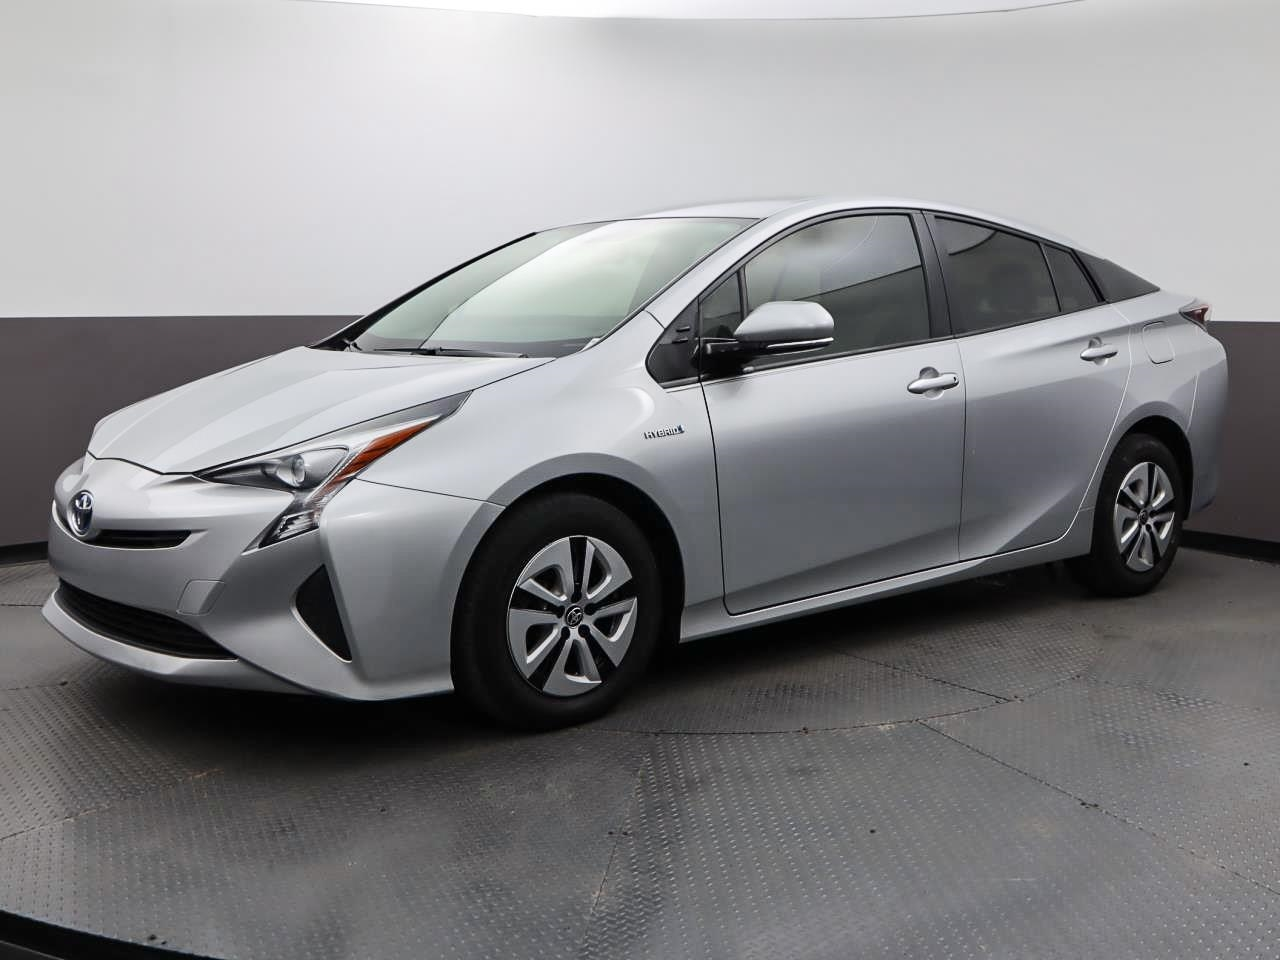 Used TOYOTA PRIUS 2016 MARGATE TWO ECO